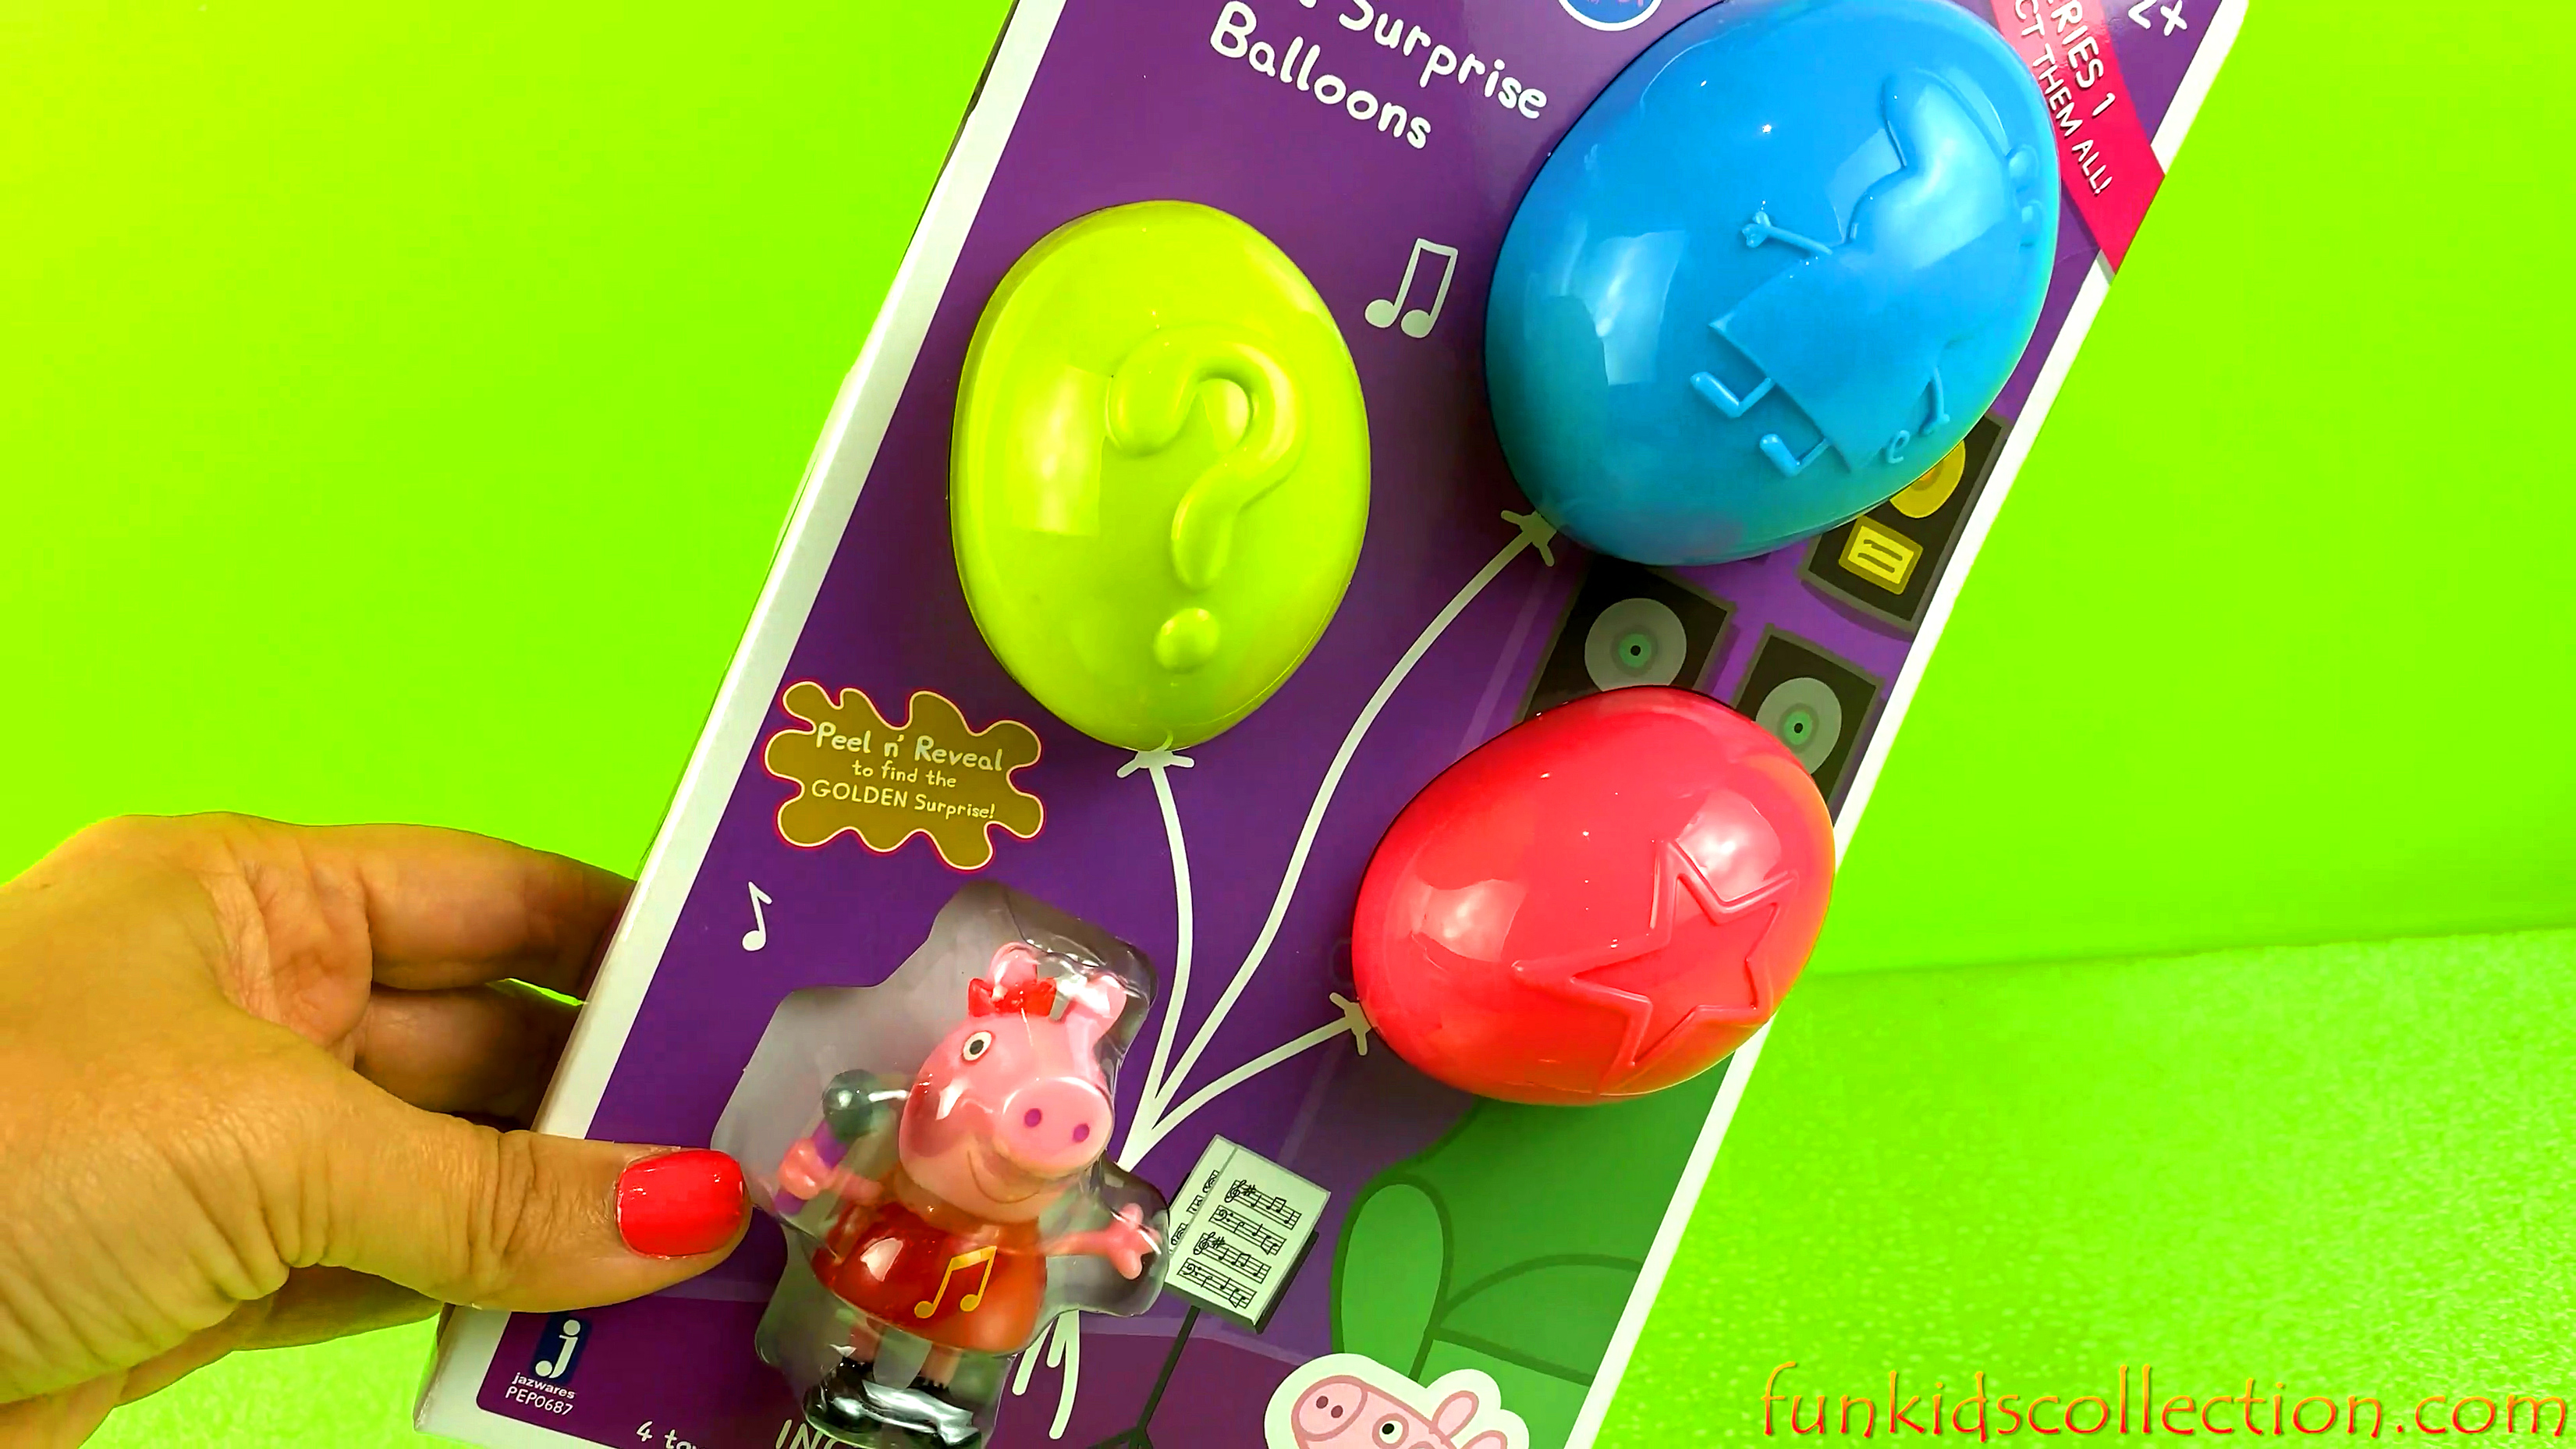 Peppa Pig Surprise Balloons Series 1 Music | Peppa Pig Peal n' Reveal the Golden Surprise